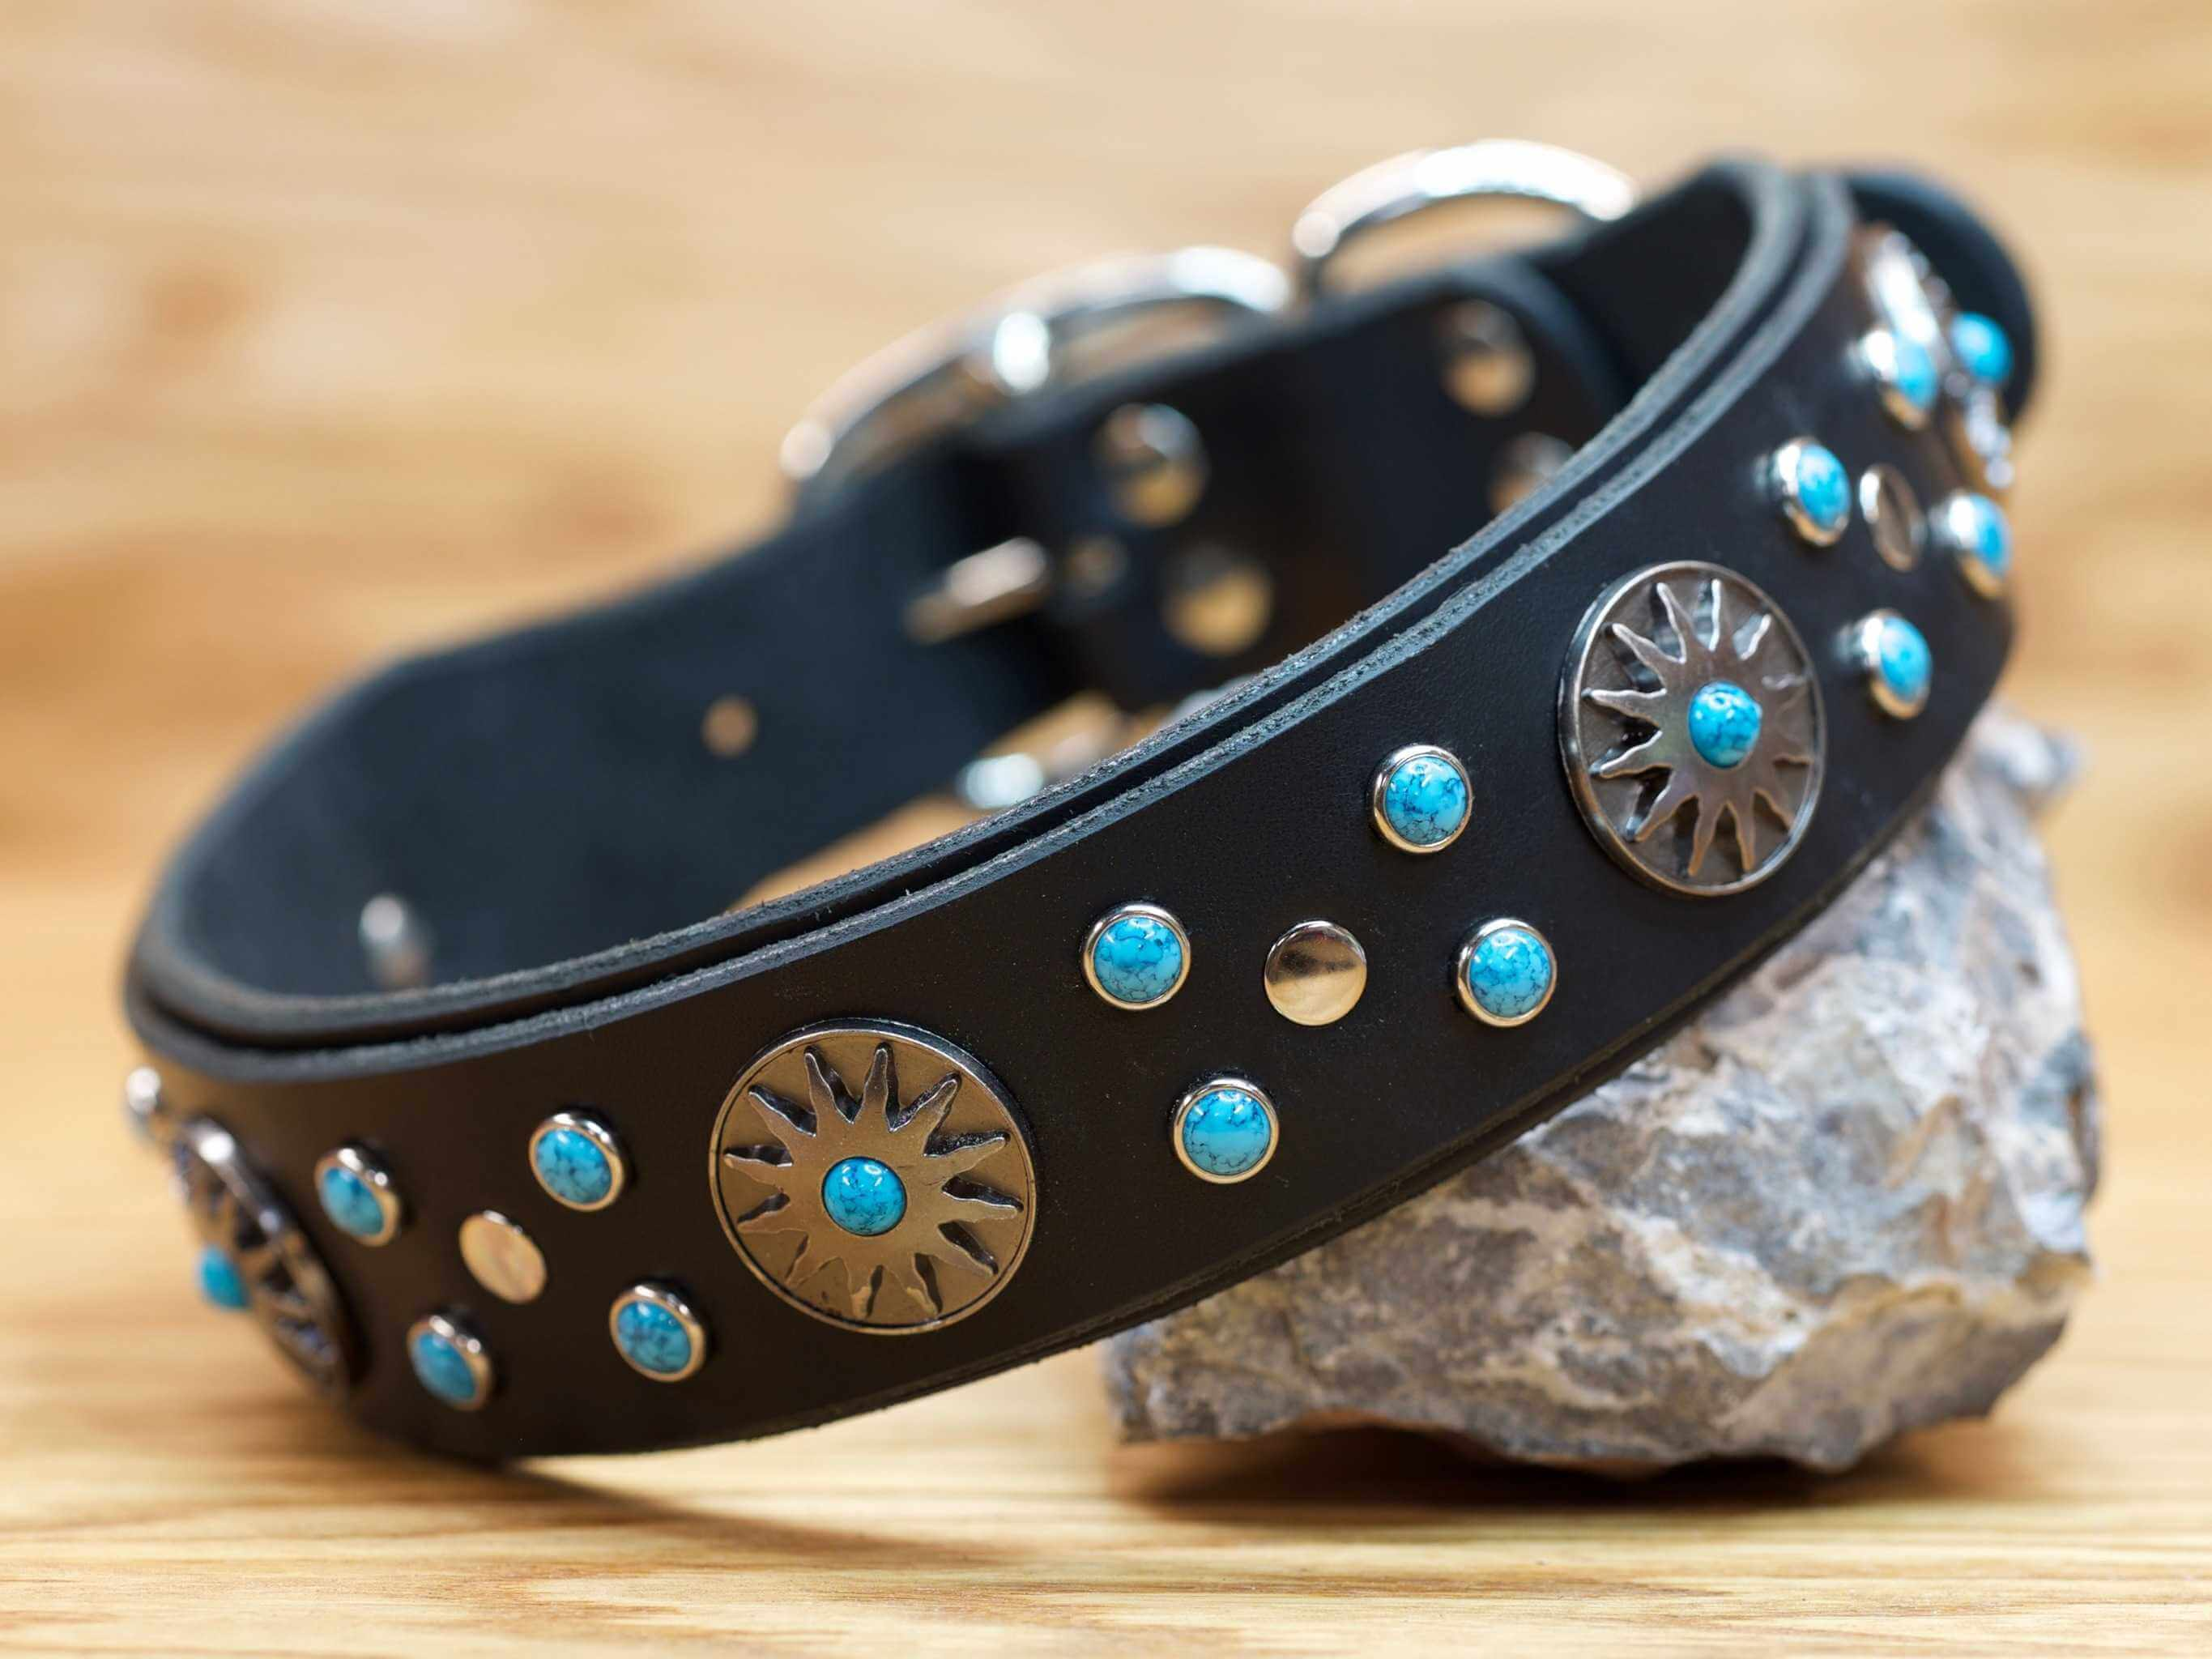 Your dog will get noticed wearing the Surya leather collar